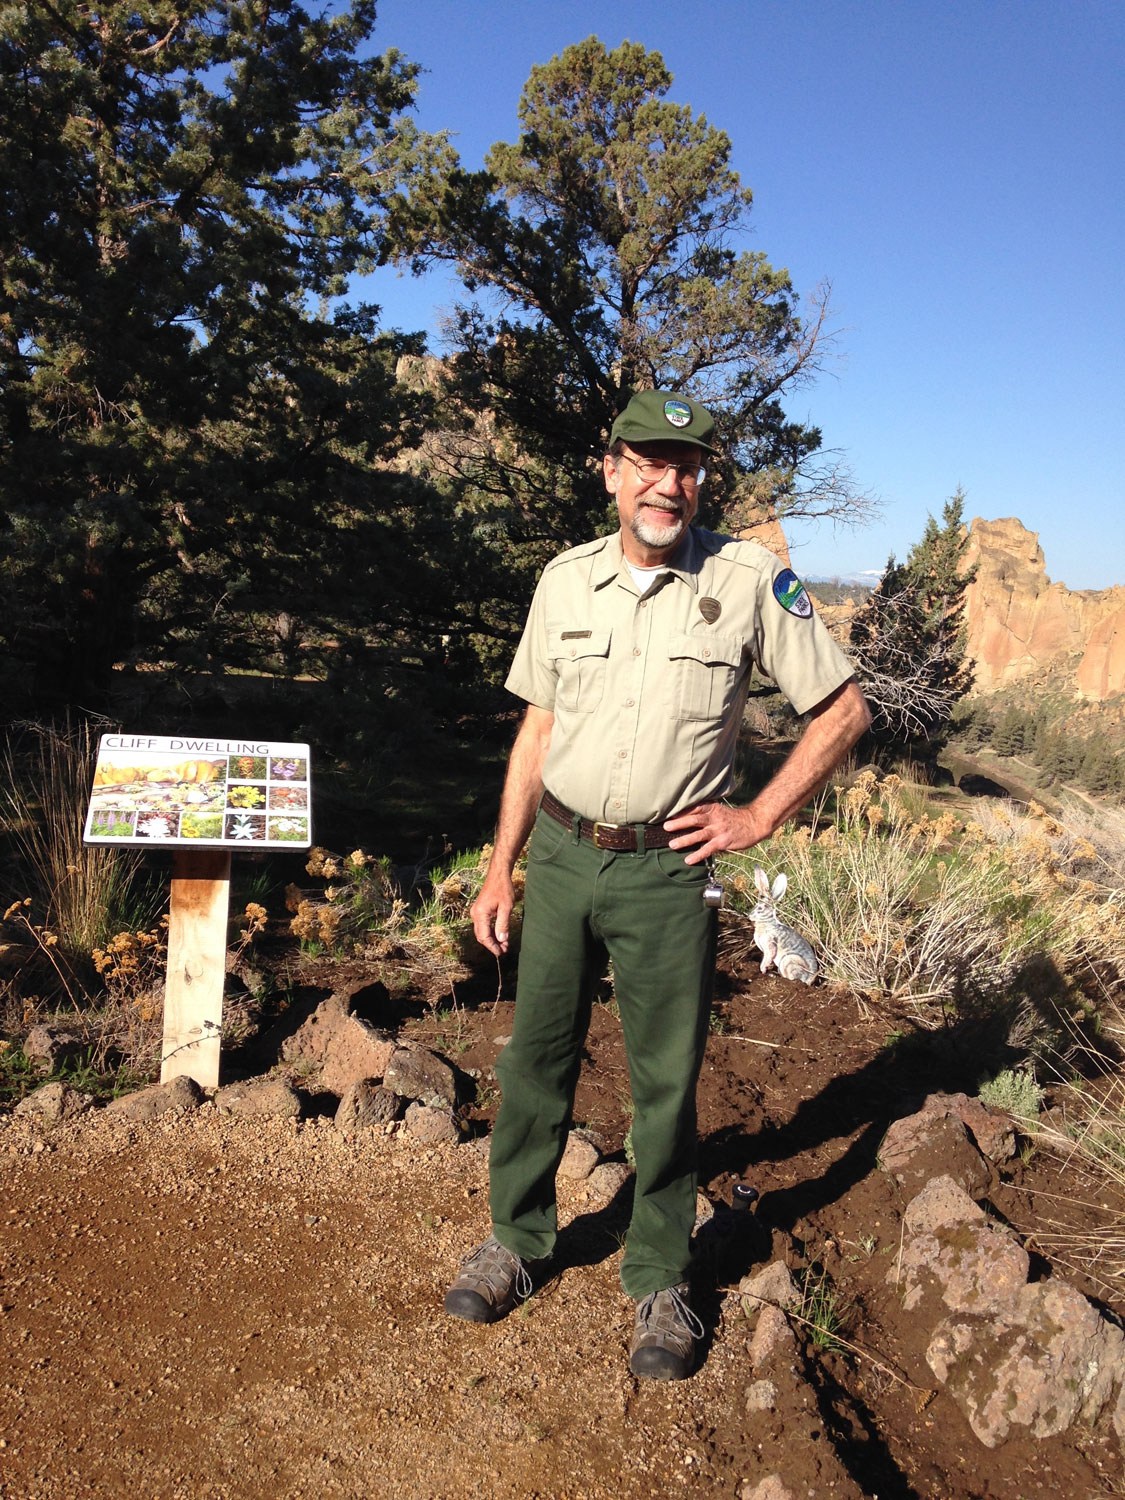 David Vick, former Smith Rock State Park Naturalist